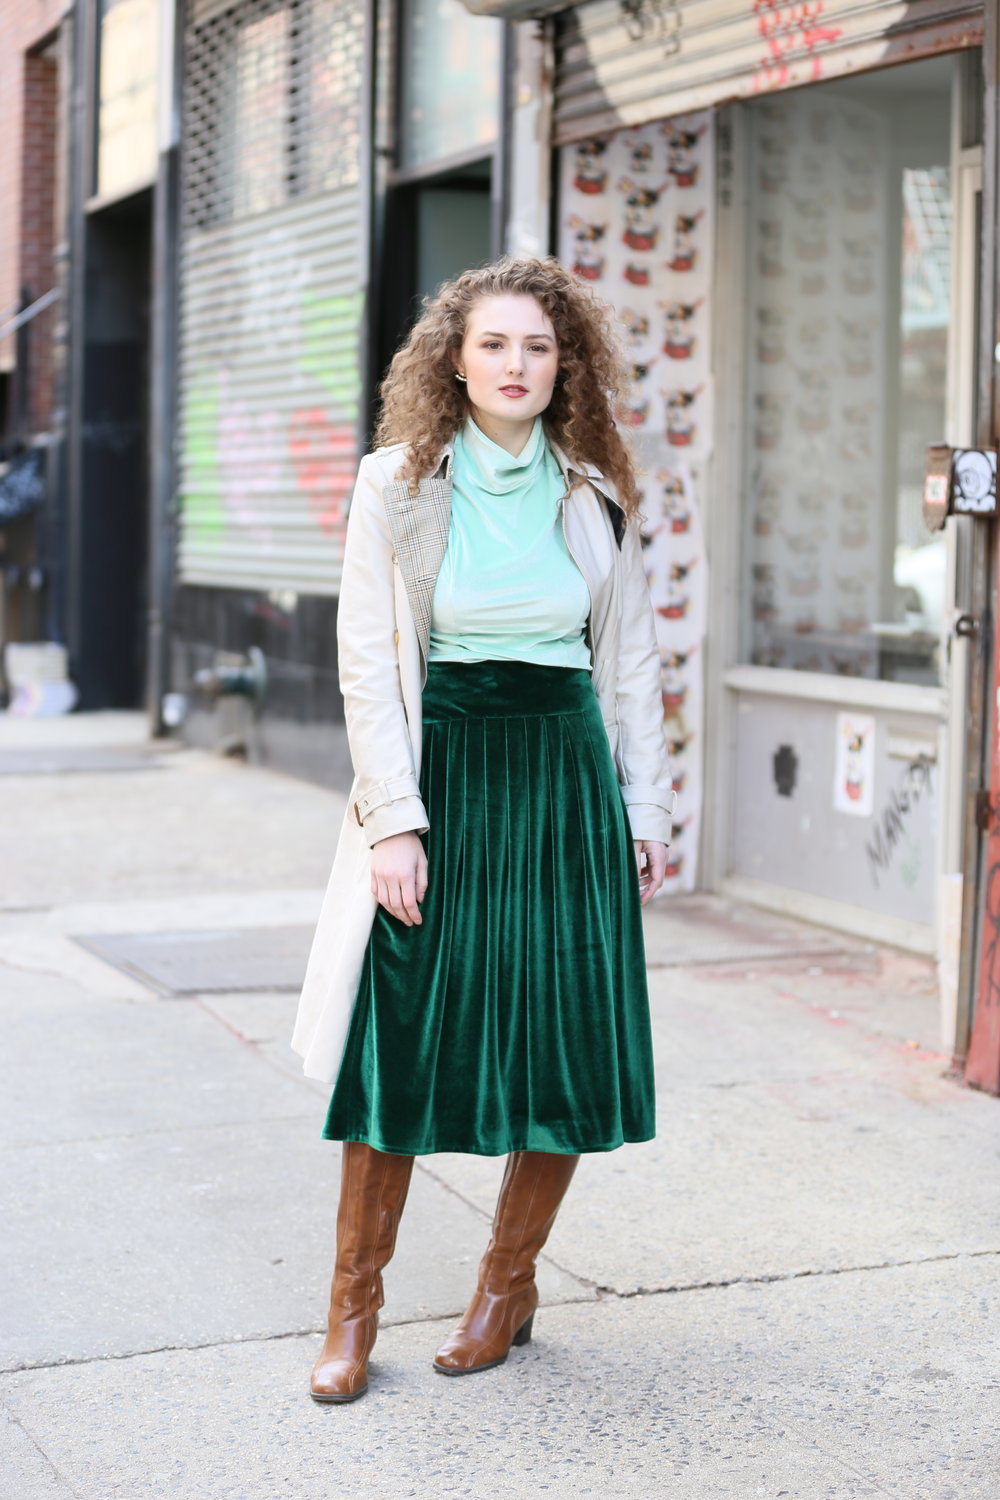 Go Green. - The Le city-chic collection focuses on plush velvet pieces that are soft yet sleek and have that indie-brand cool. Shop Le City Chic Velvet Skirt (Vert)Shop Velvet Cowl Neck Top Mint